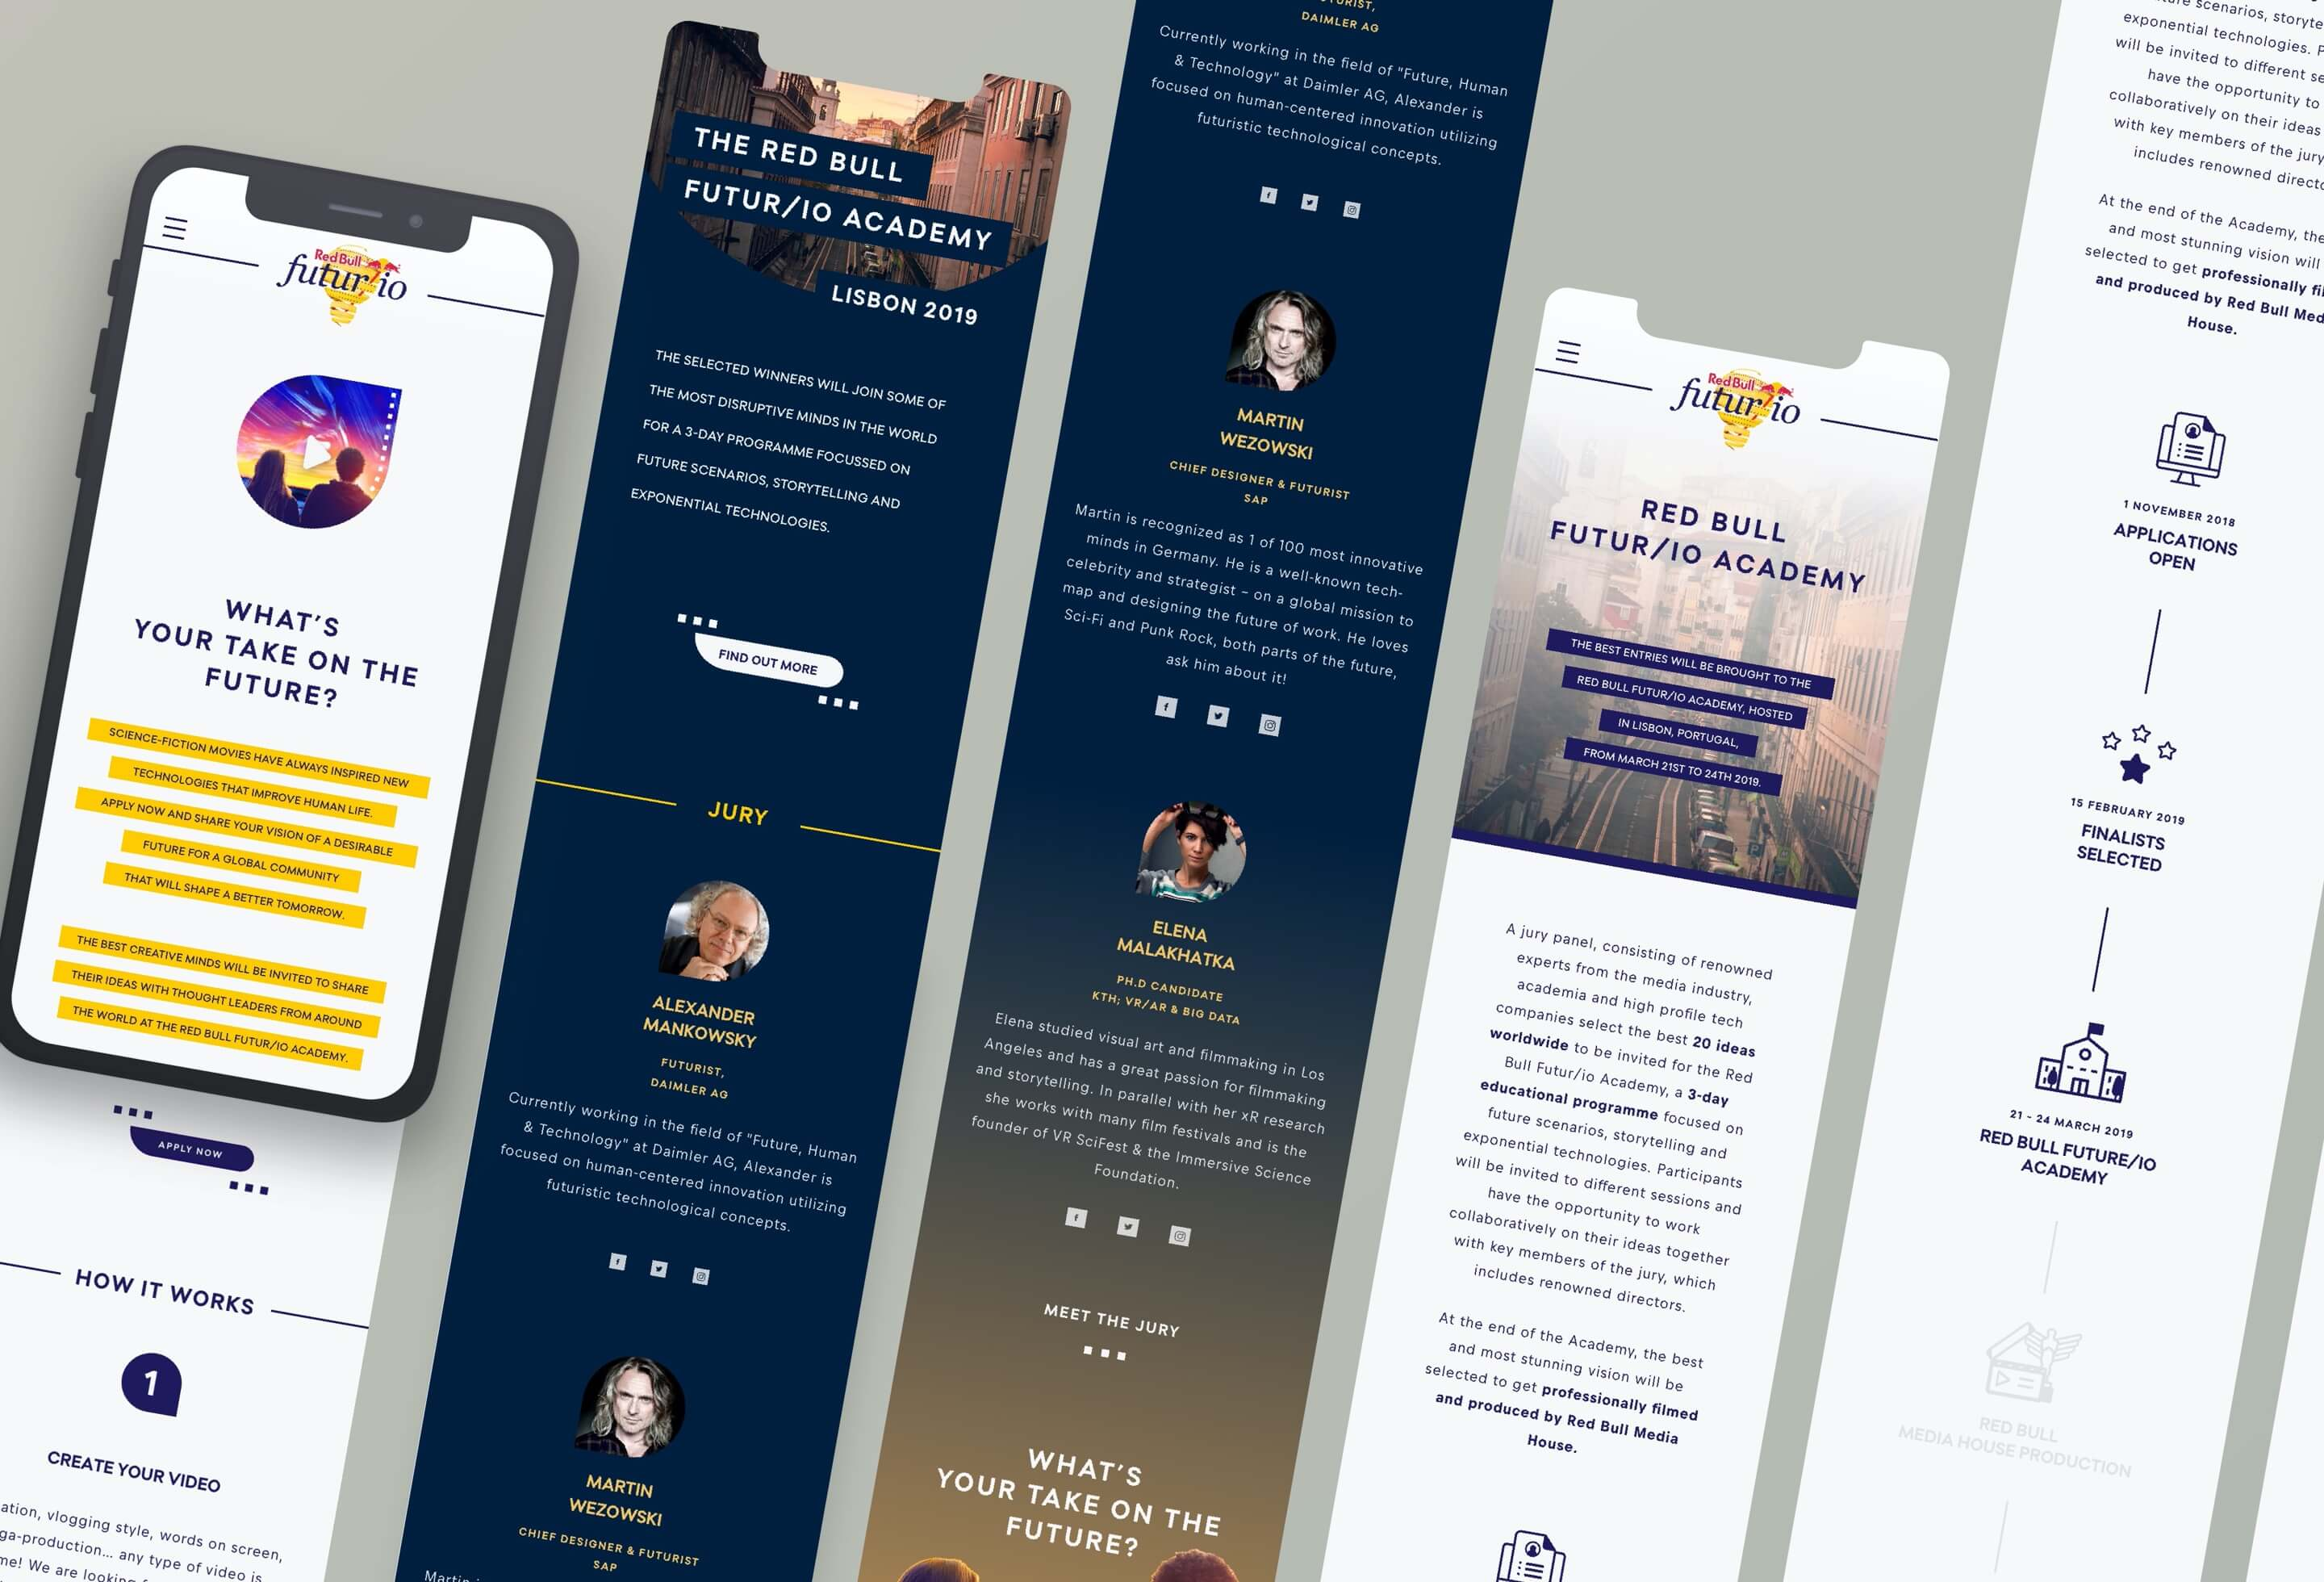 An overview of the website designs on mobile devices